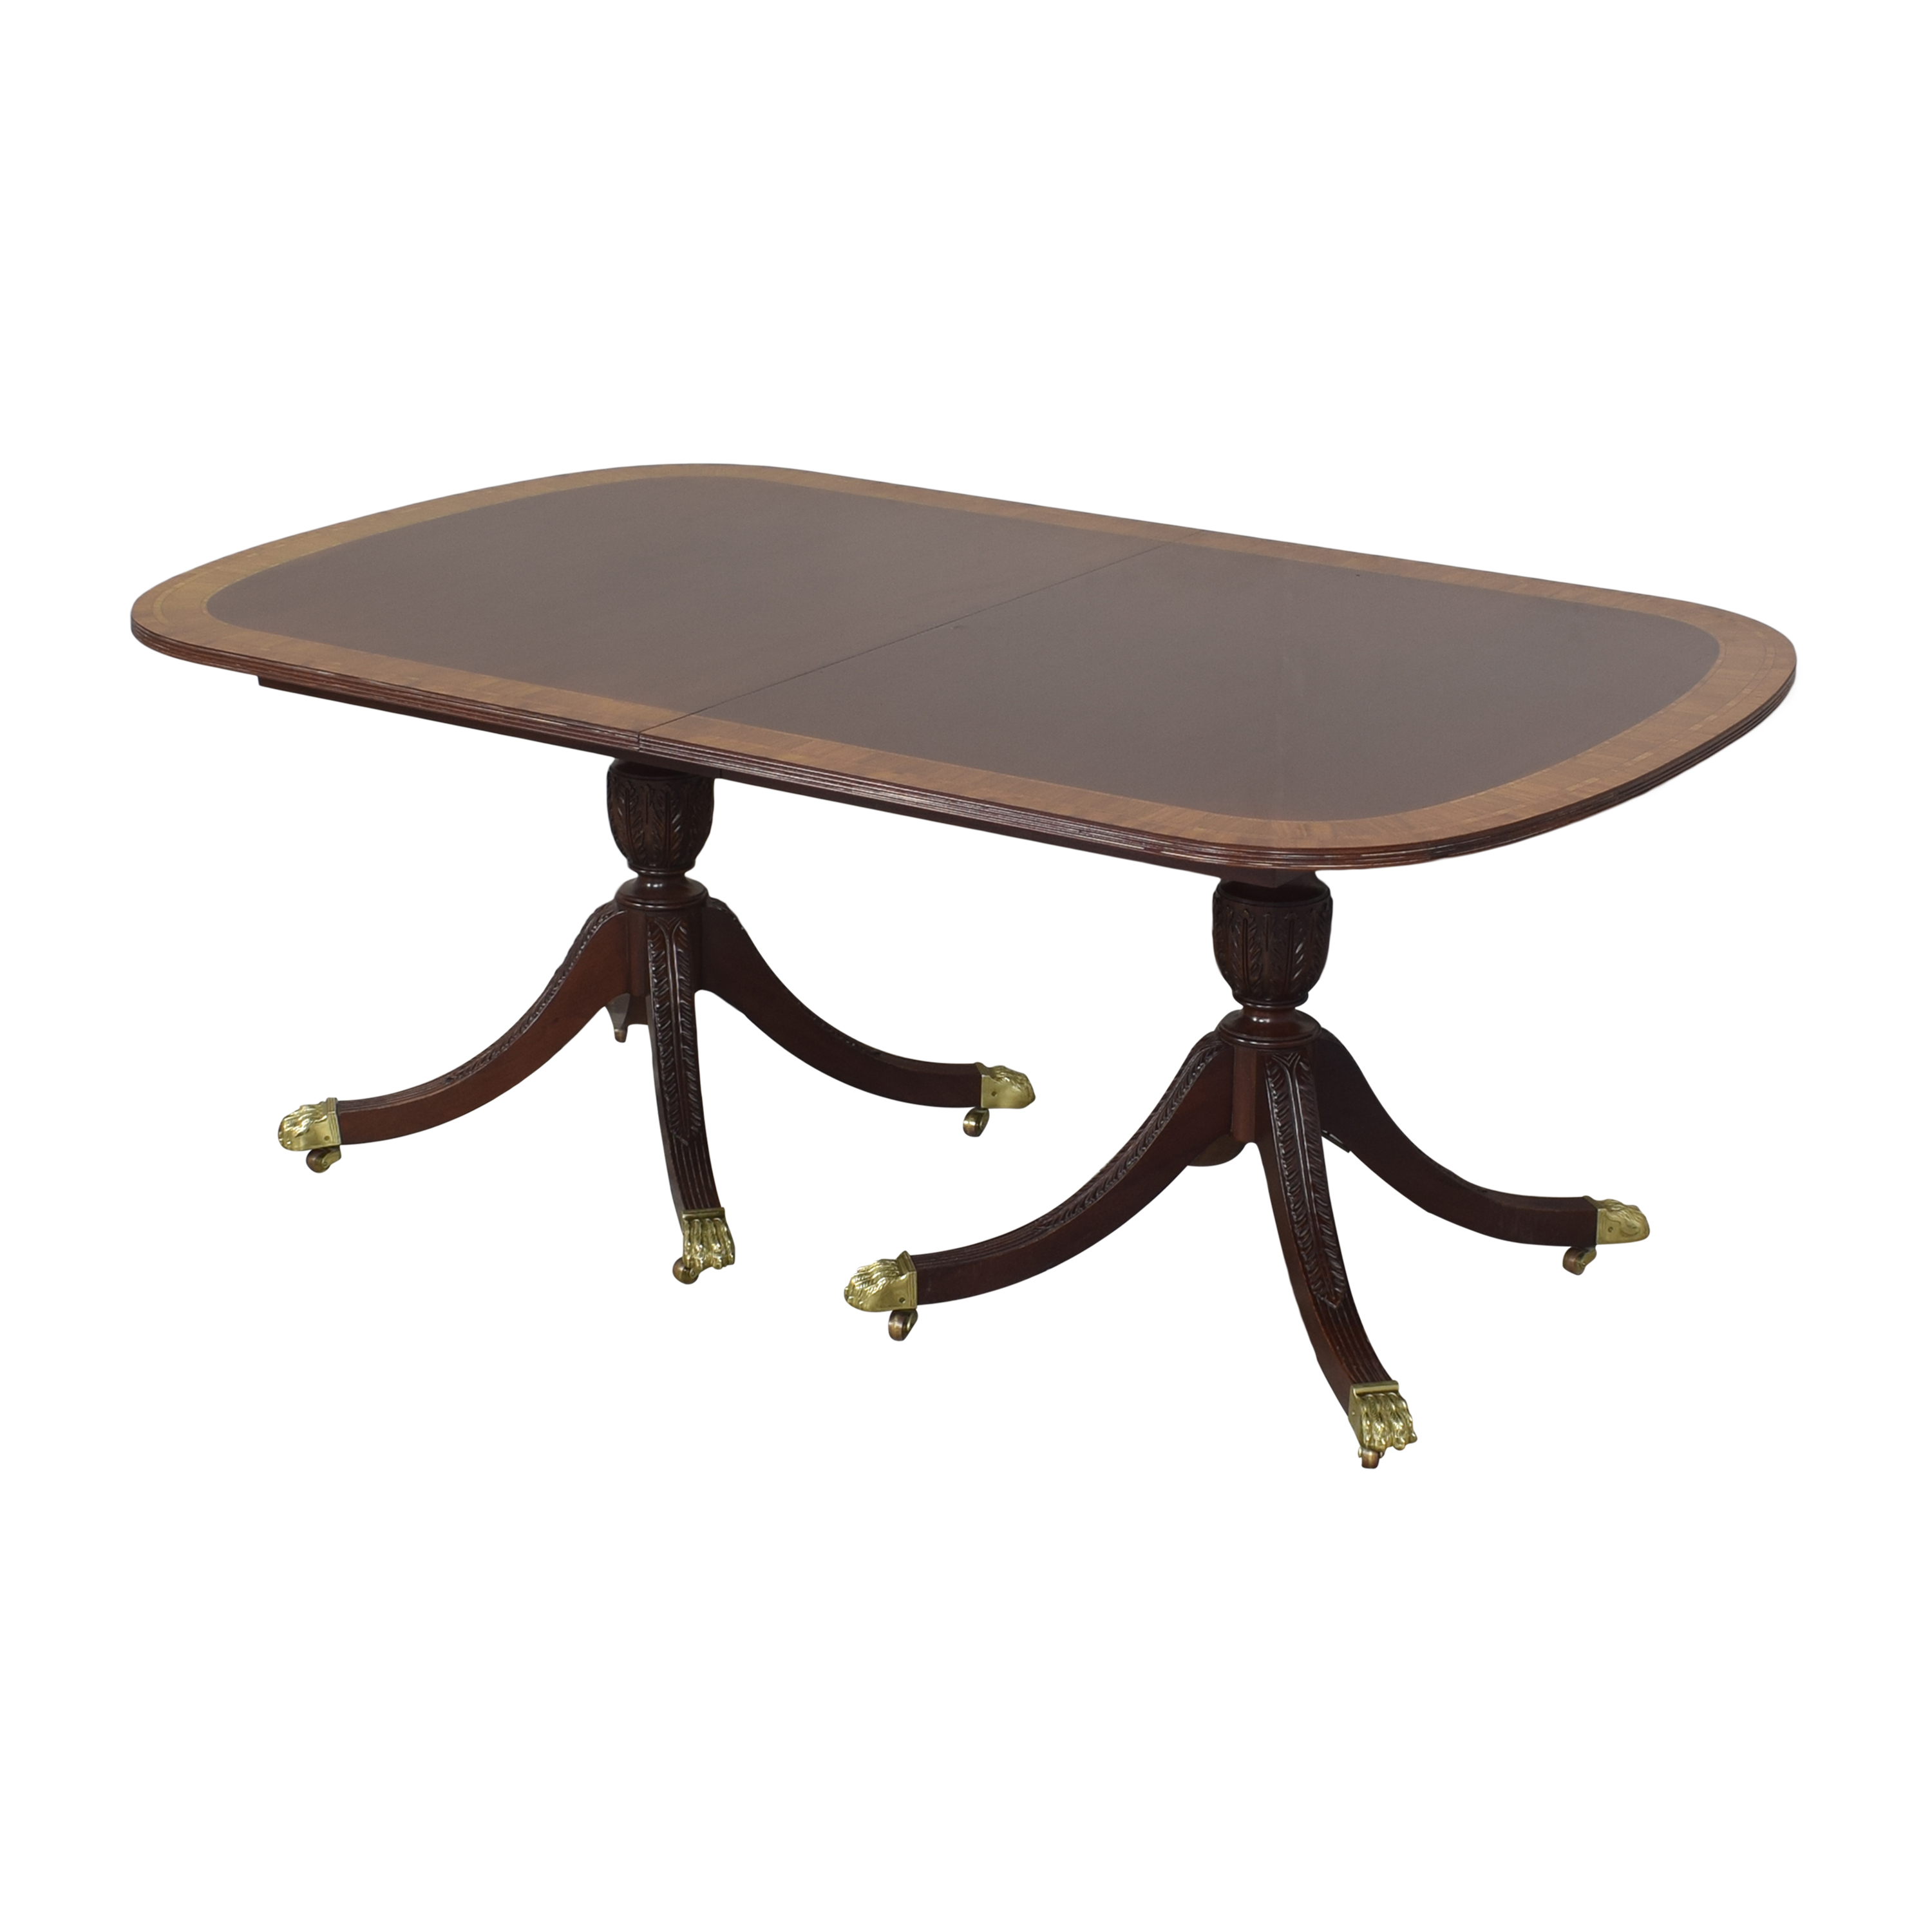 Councill Councill Extendable Dining Table dimensions